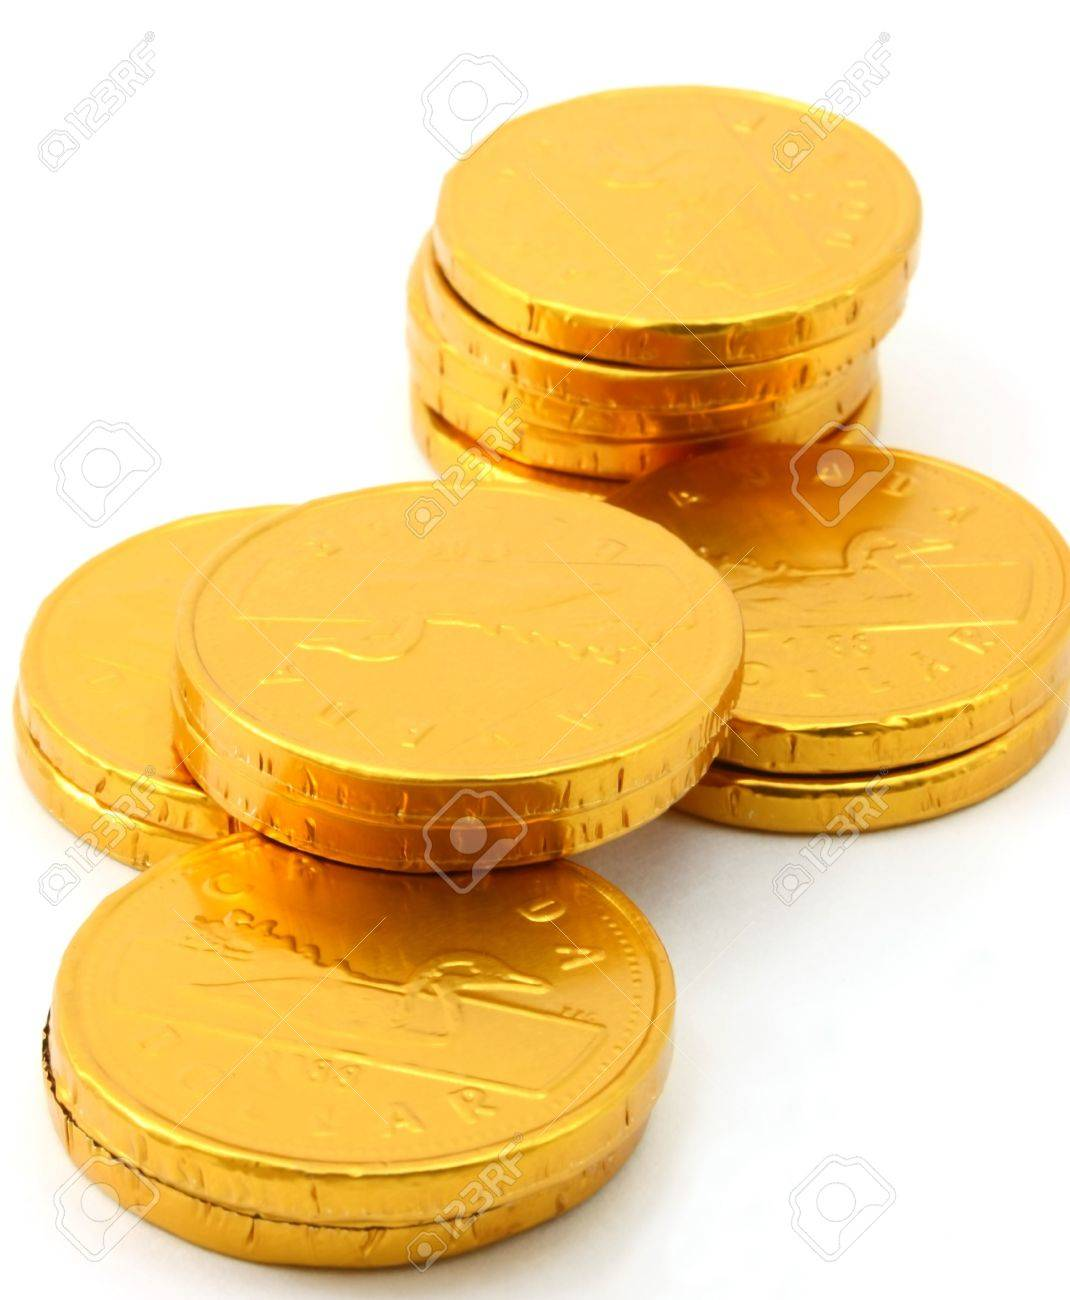 Four Stacks Of Chocolate Gold Coins Stock Photo, Picture And ...